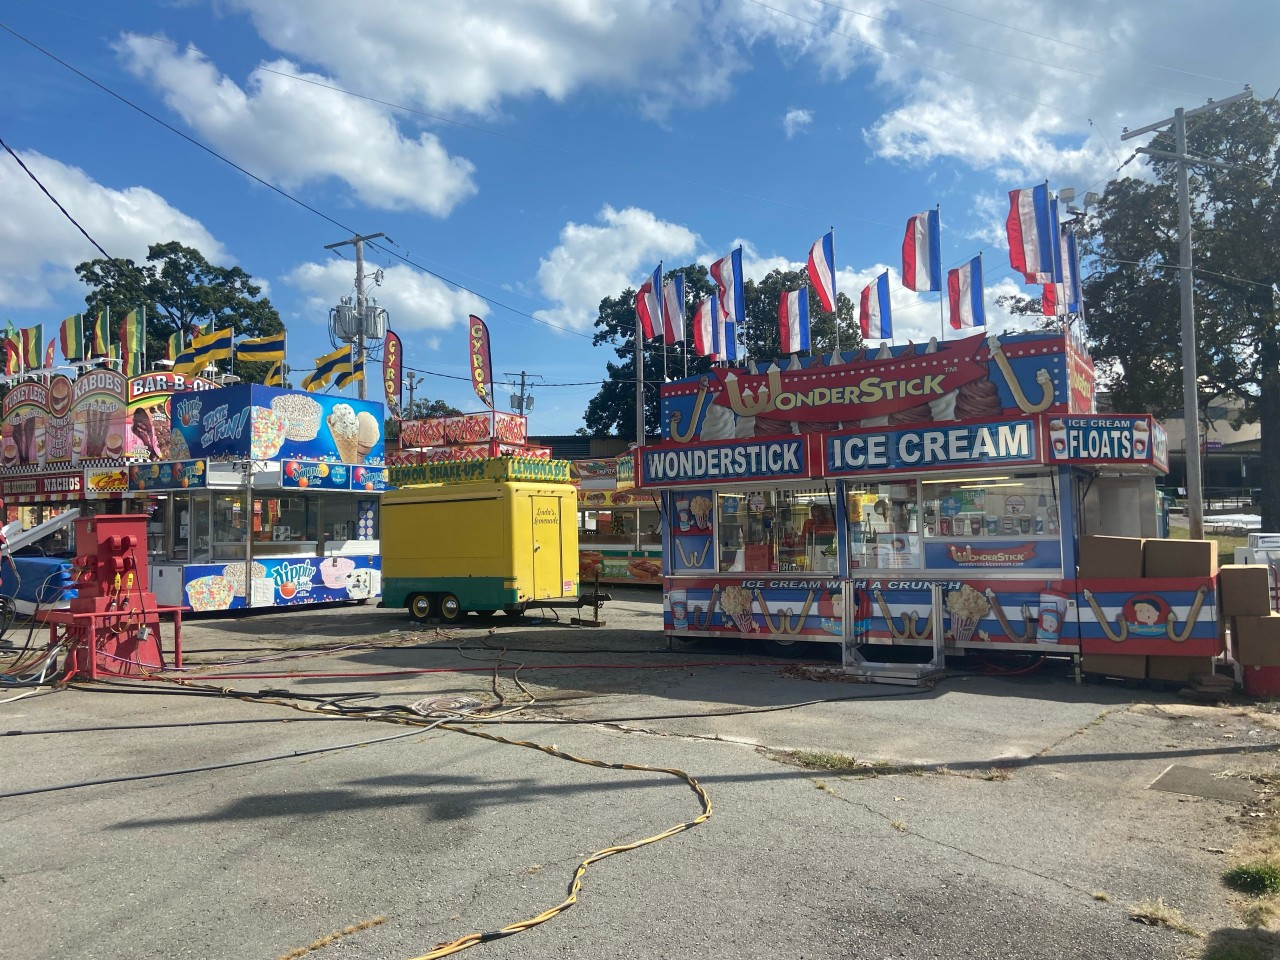 Arkansas State Fair organizers making safety a priority as opening approaches